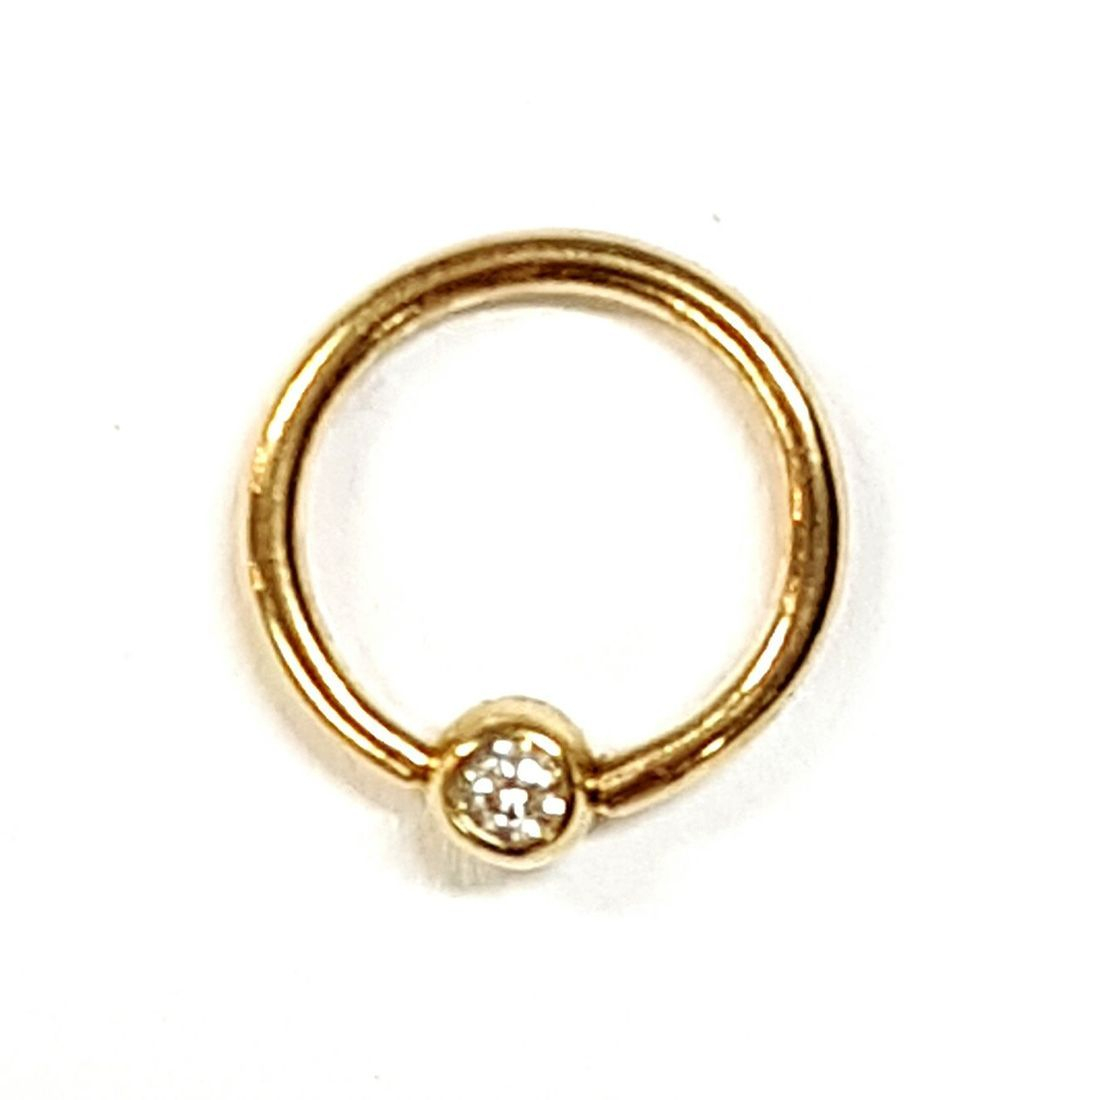 14ct Gold Cubic Zirconia ball closure ring available at Kazbah online or our Leicester City Centre shop